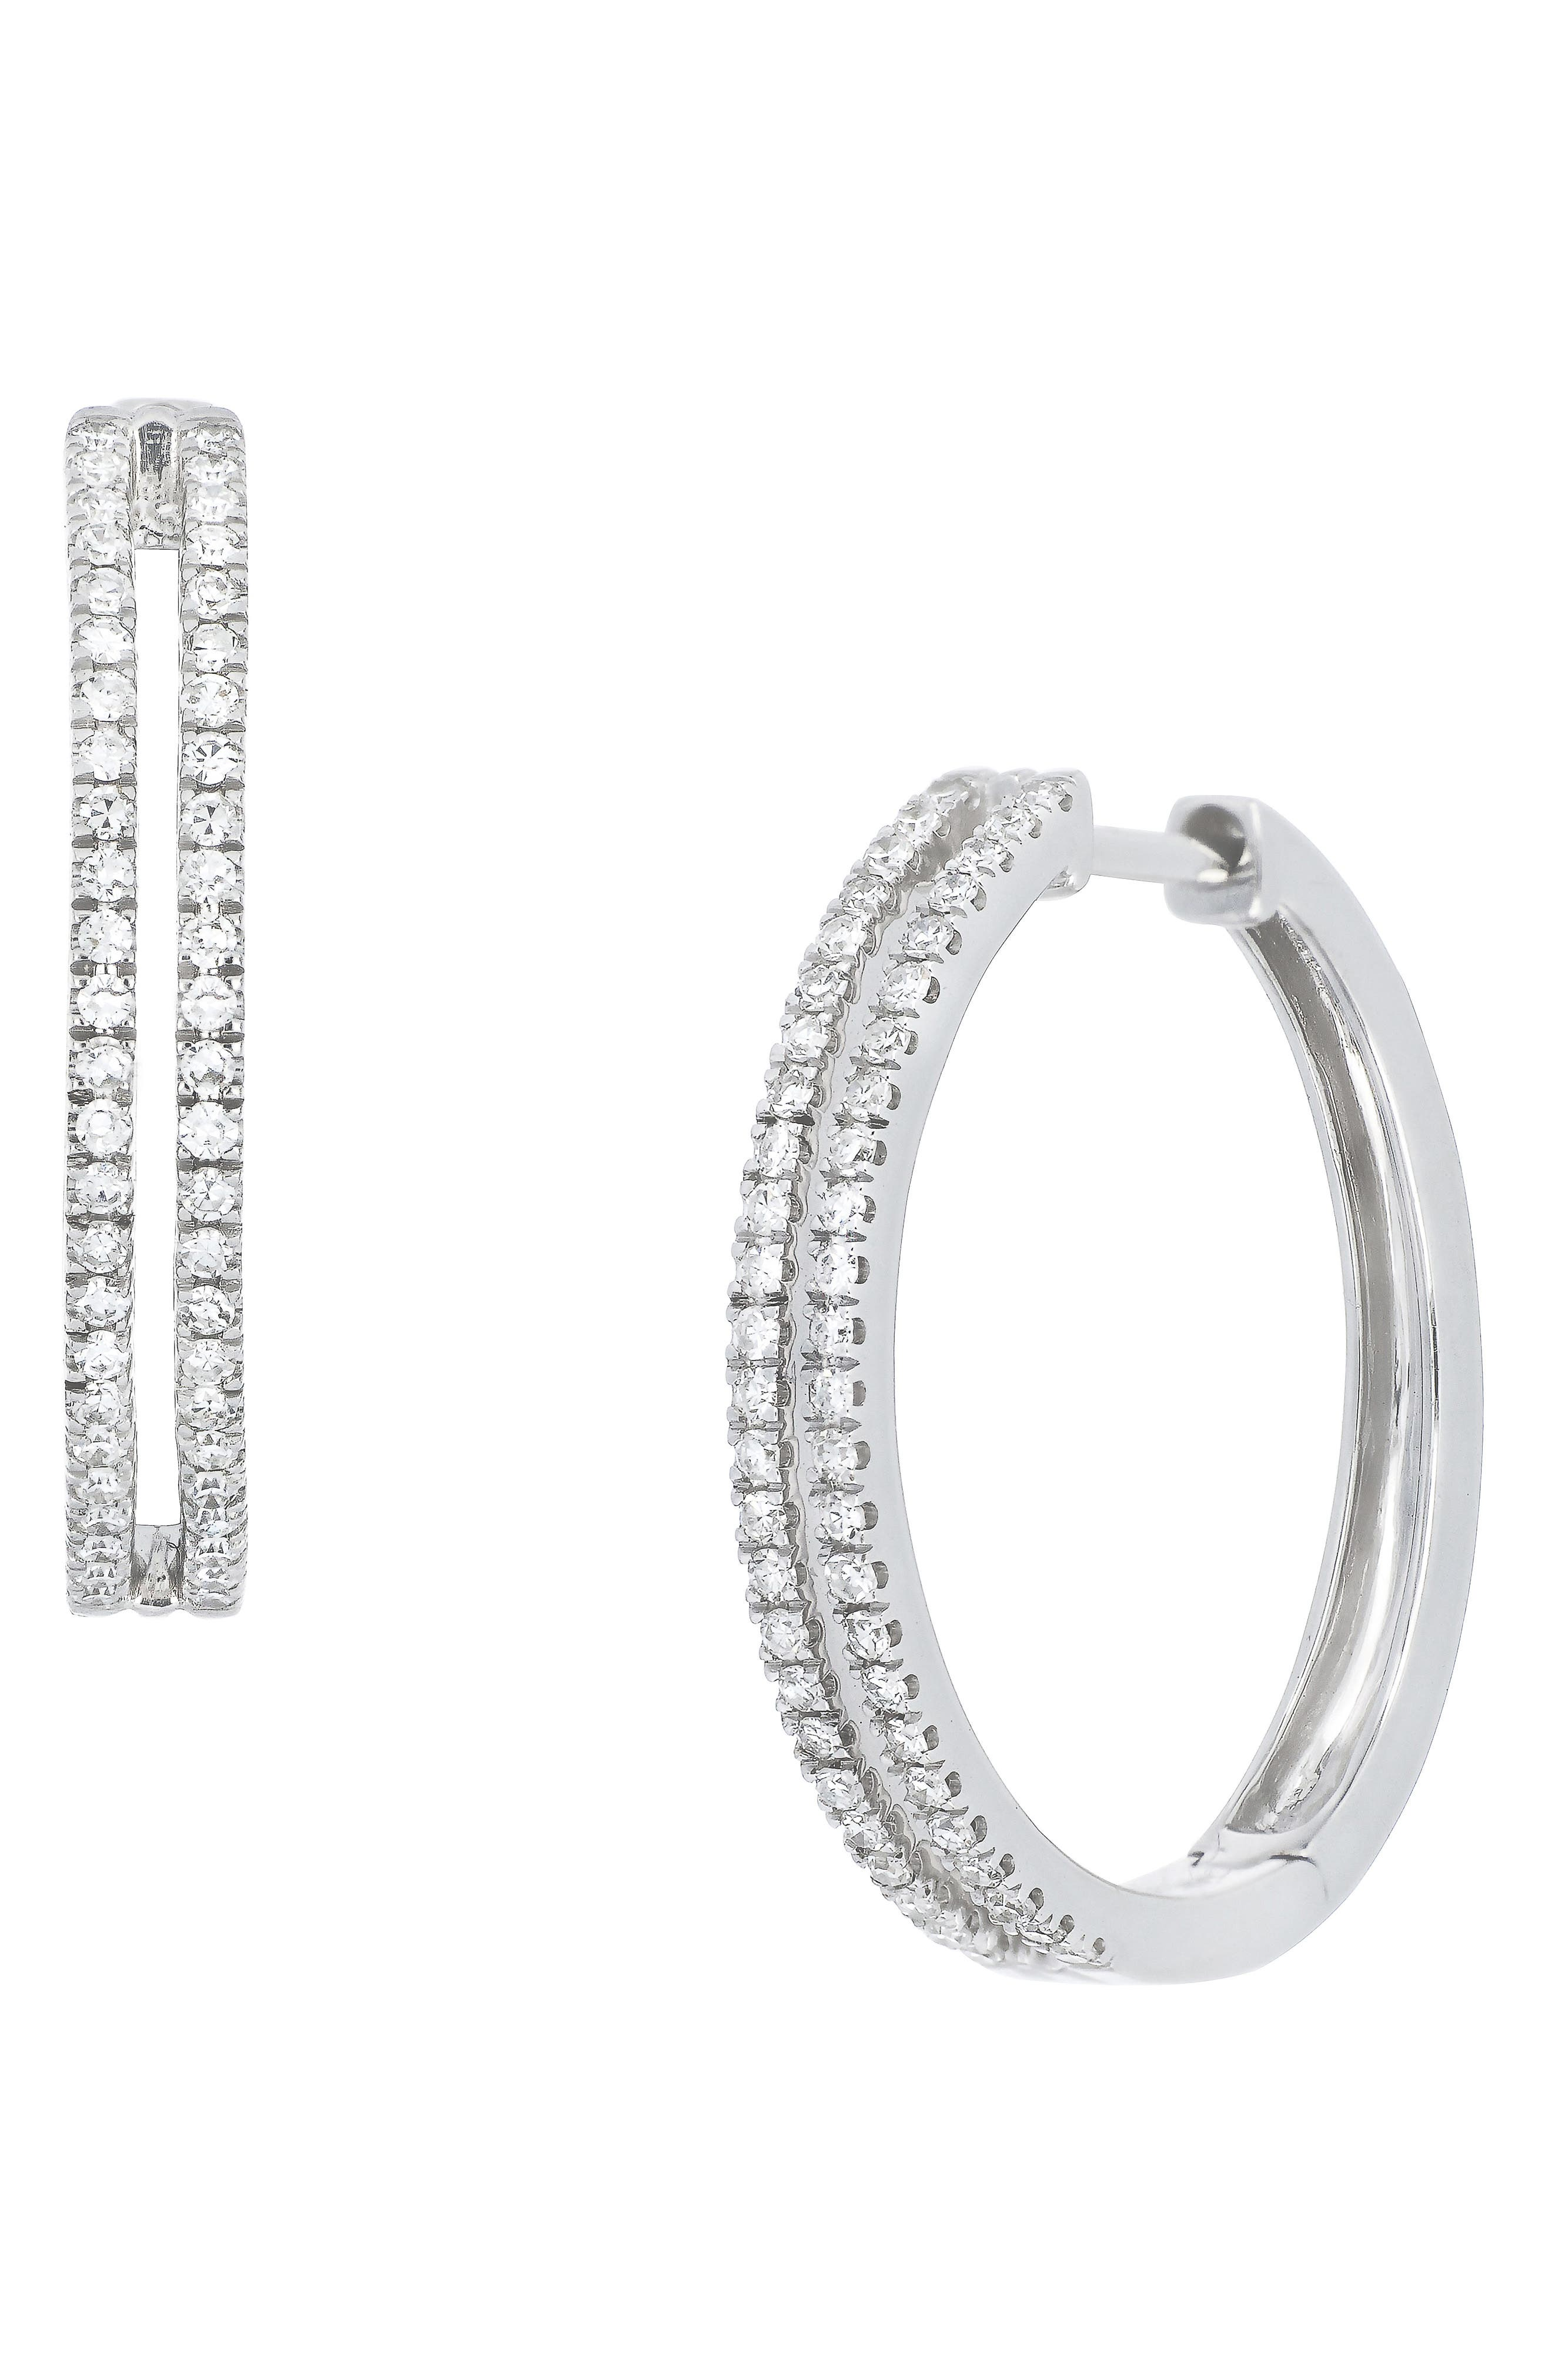 Carrière Double Row Diamond Hoop Earrings,                             Main thumbnail 1, color,                             STERLING SILVER/ DIAMOND